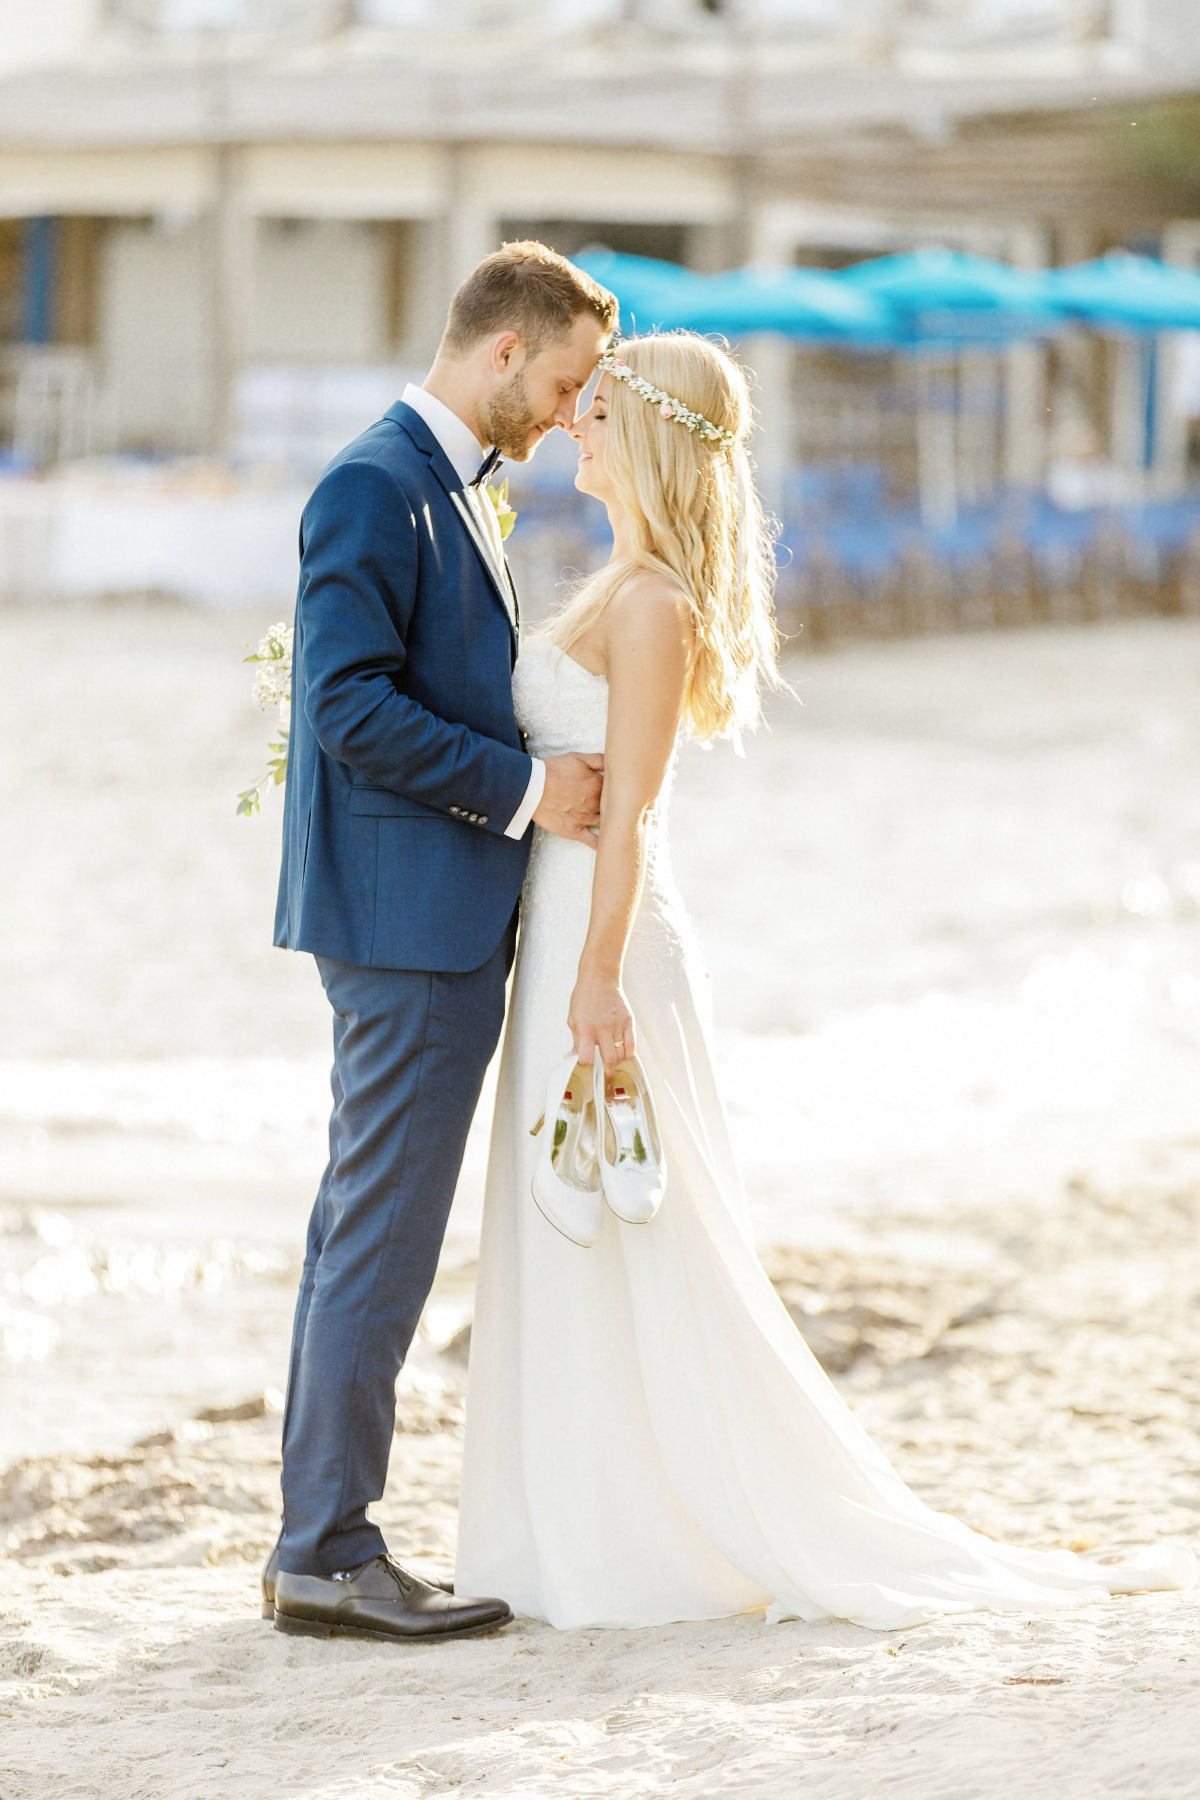 Romantic beach wedding in Saint Tropez